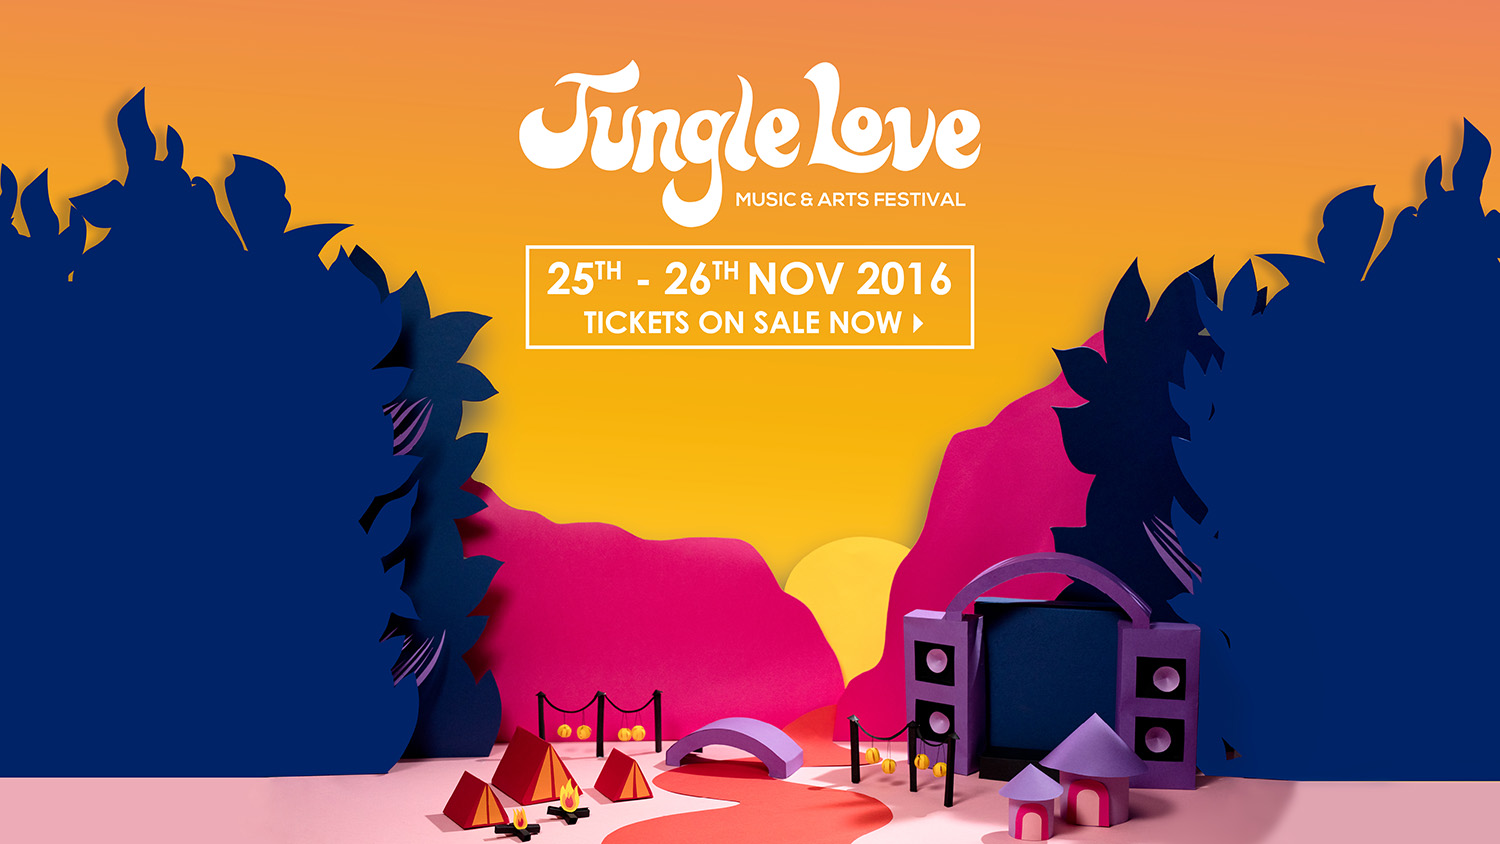 Tickets for Jungle Love Festival 2016 in Imbil from Ticketbooth